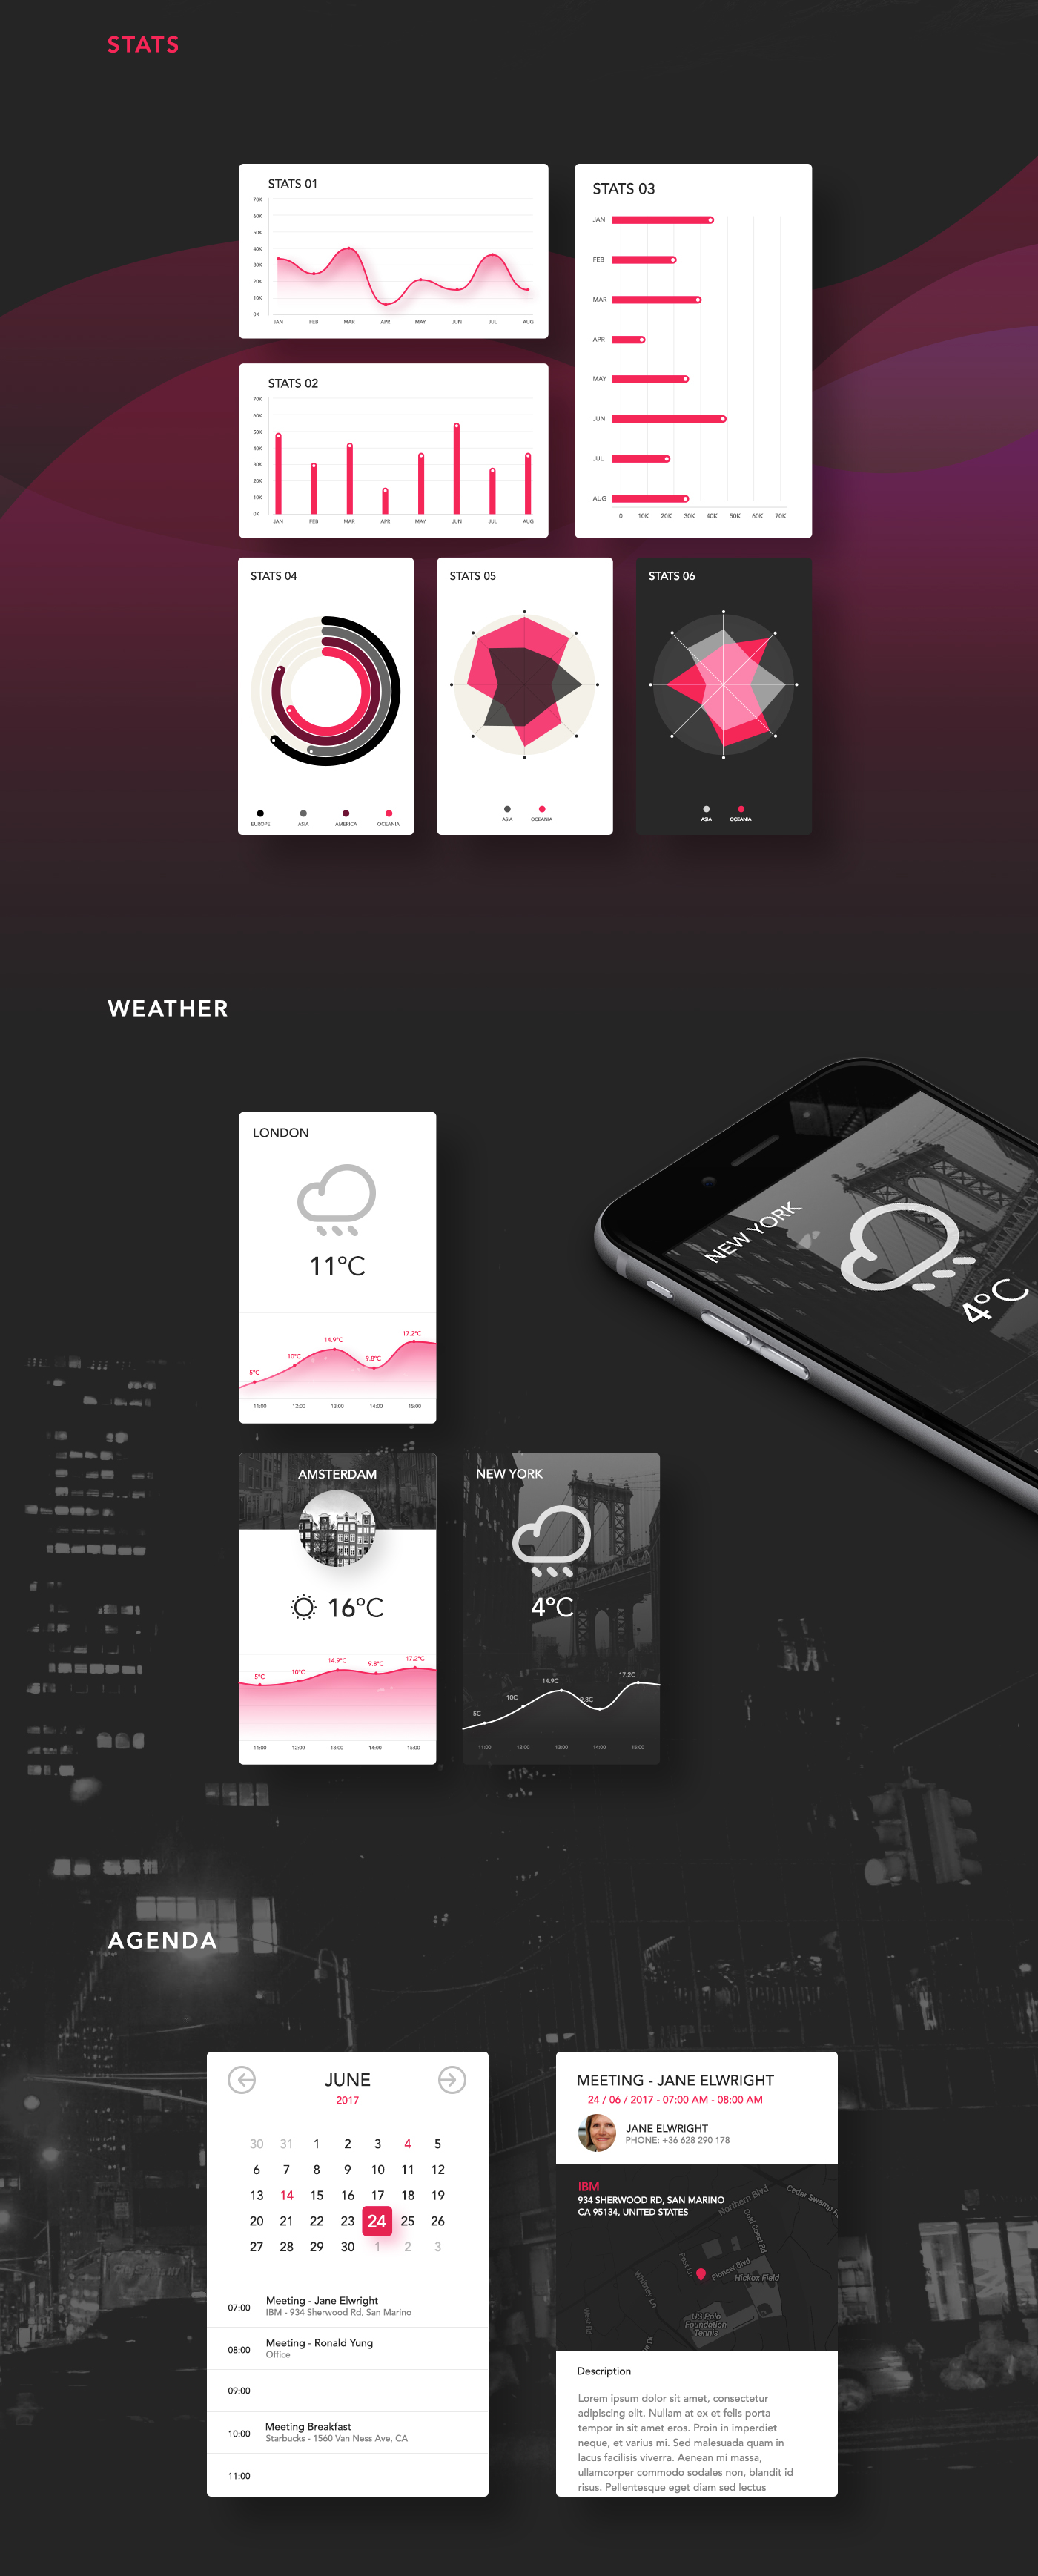 UI kit ui kit icons user interface user experience Web app application mobile app design free resources Layout Interface